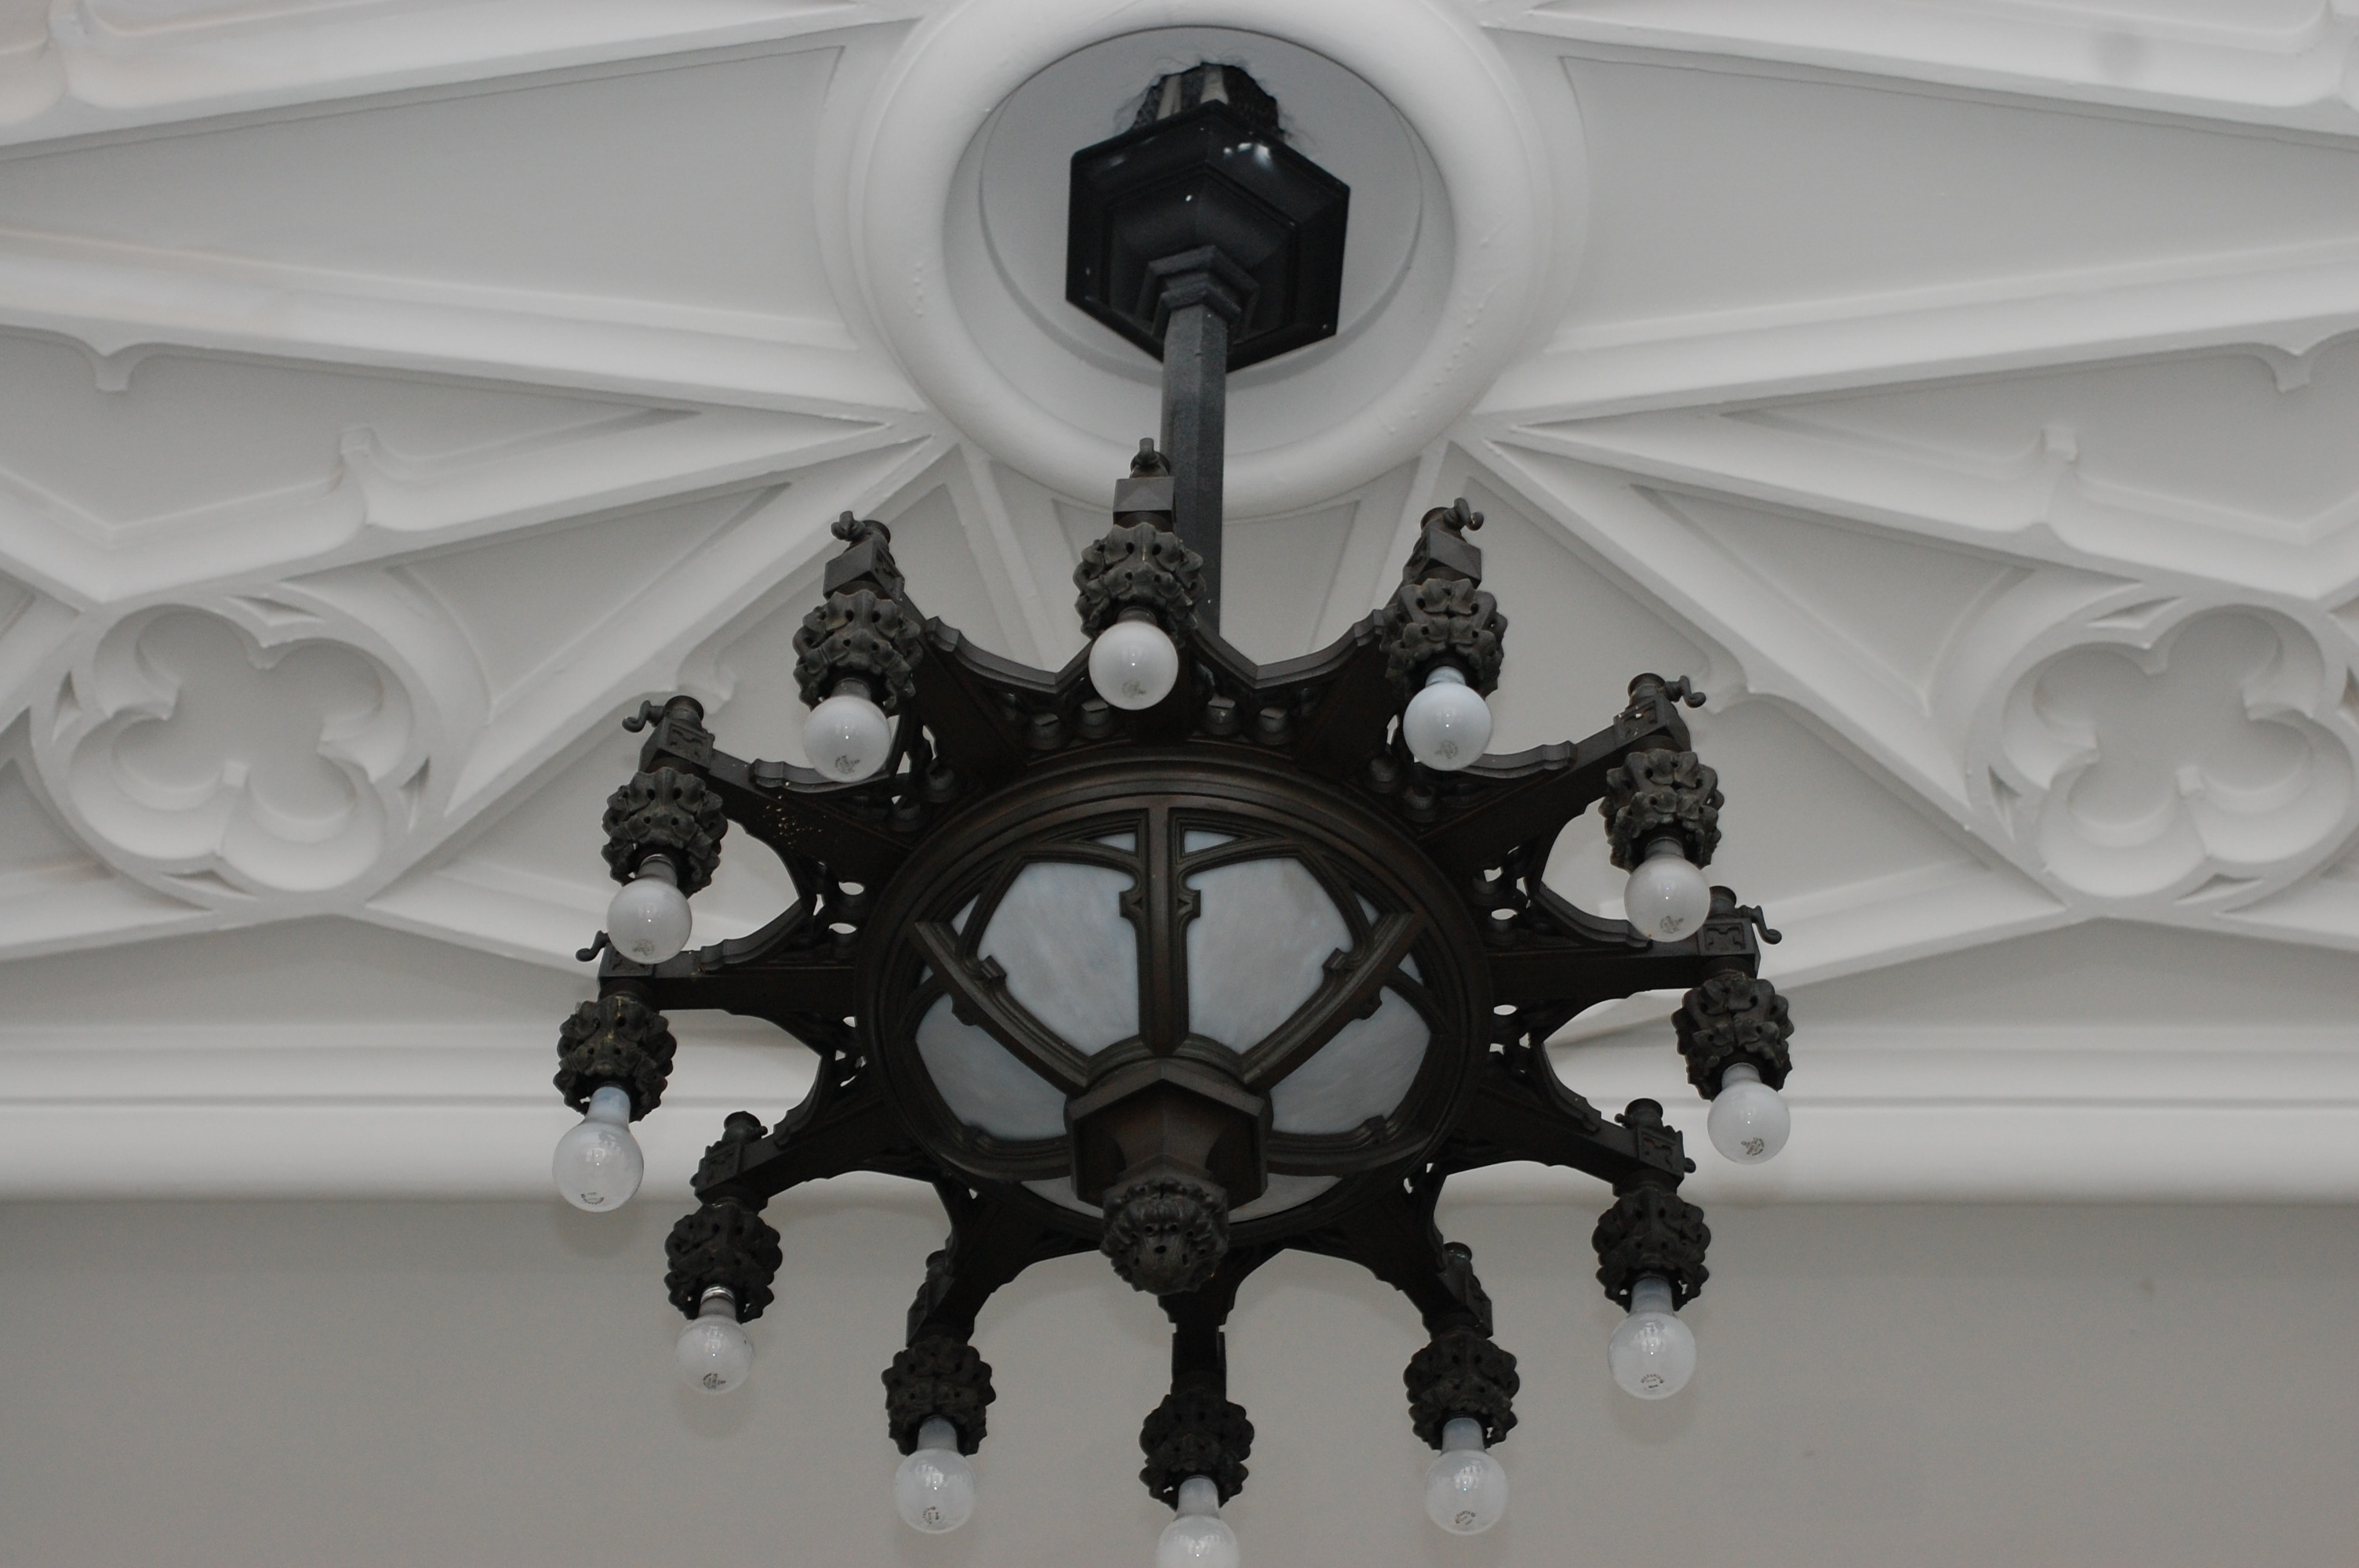 Ornate plasterwork can be found in locations throughout the school.